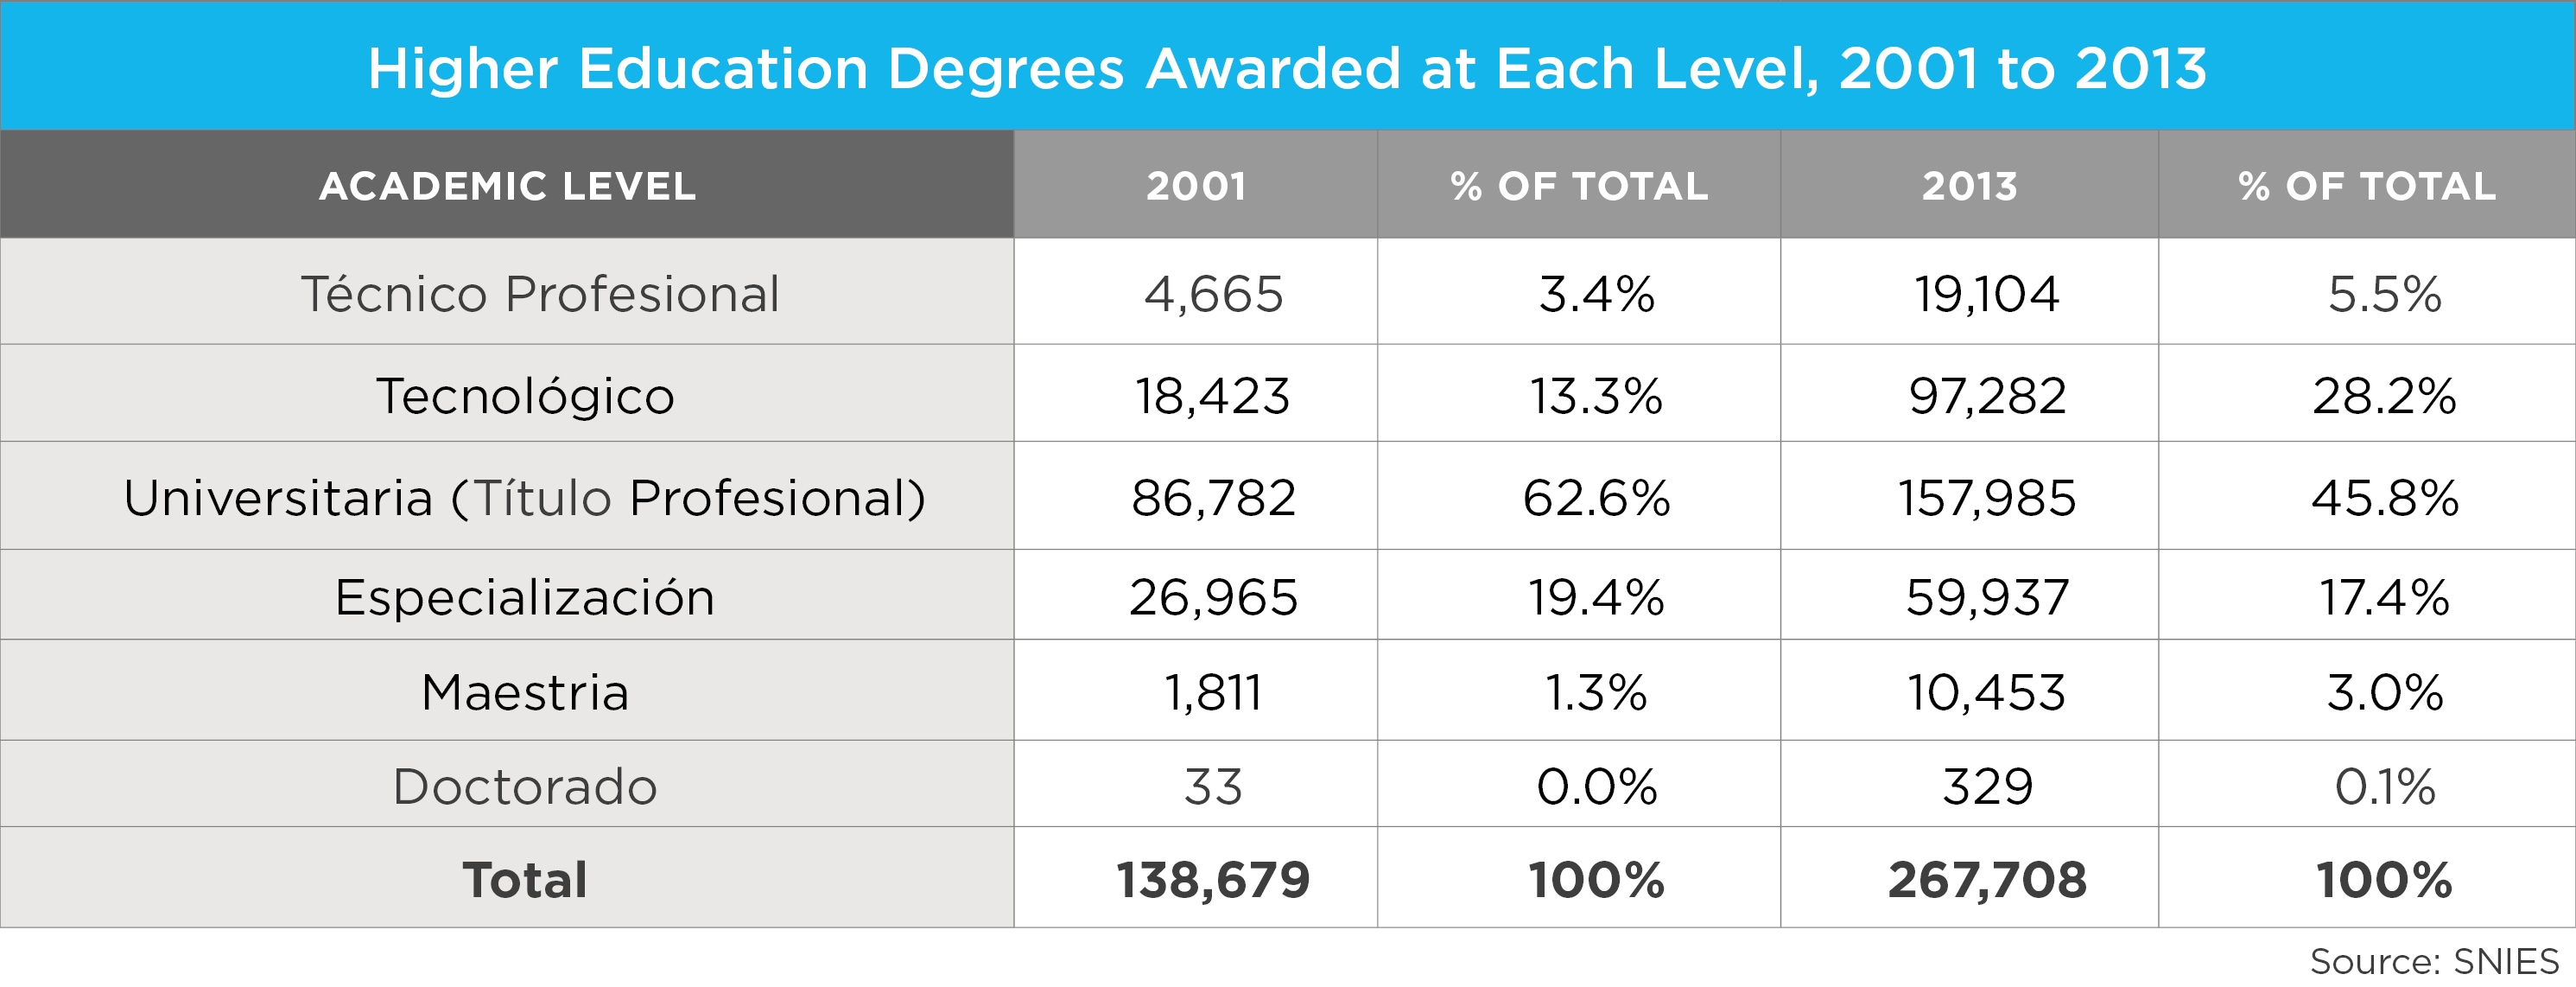 Higher-Education-Degrees-Awarded-Level-2001-2013-Colombia